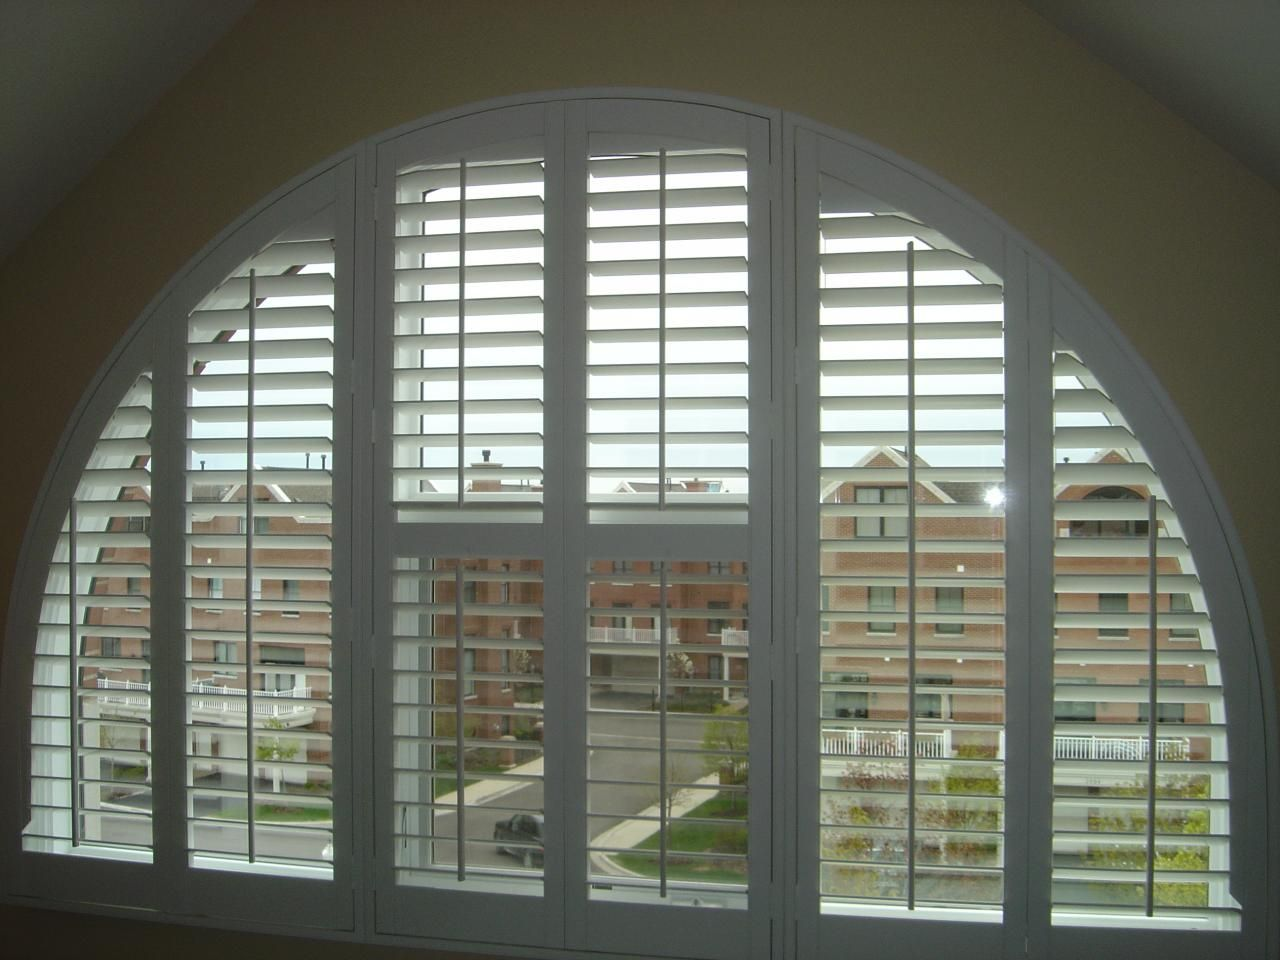 This arched window is adorned with white plantation